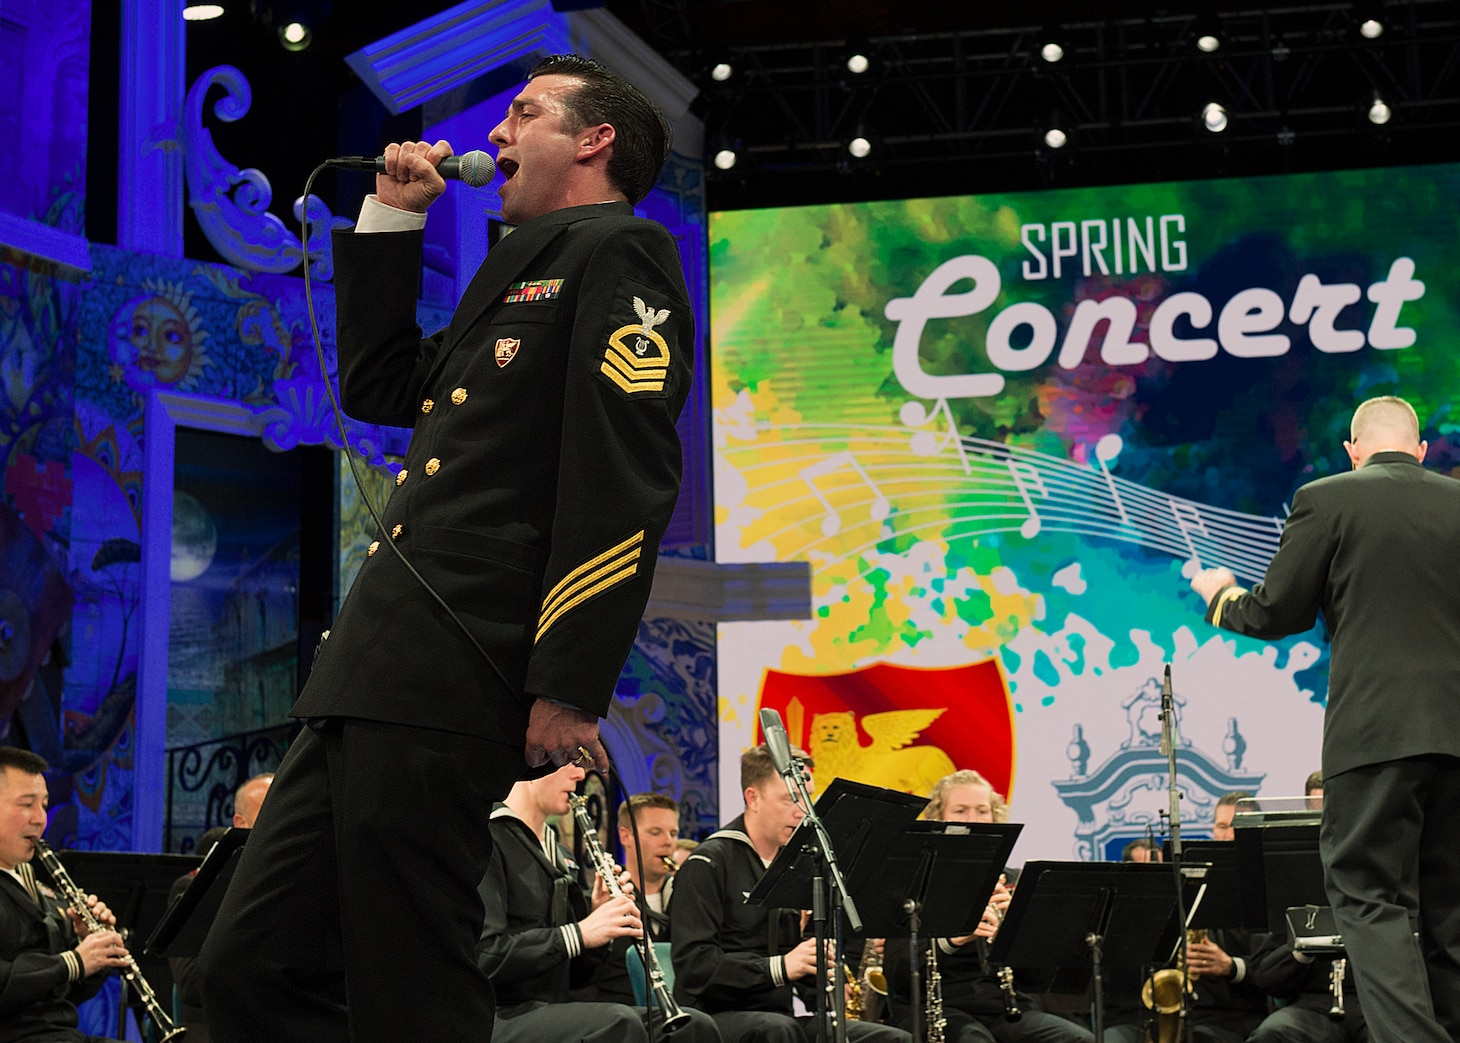 Visitors to Rai Auditorium were treated to a variety of traditional standards, pop hits, medlies, and classical music selections during a spring concert by the U.S. Naval Forces Europe Band in collaboration with the cast of singers from the Neapolitan choir 'That's Napoli Live Show' in Naples, Italy, May 3, 2019.